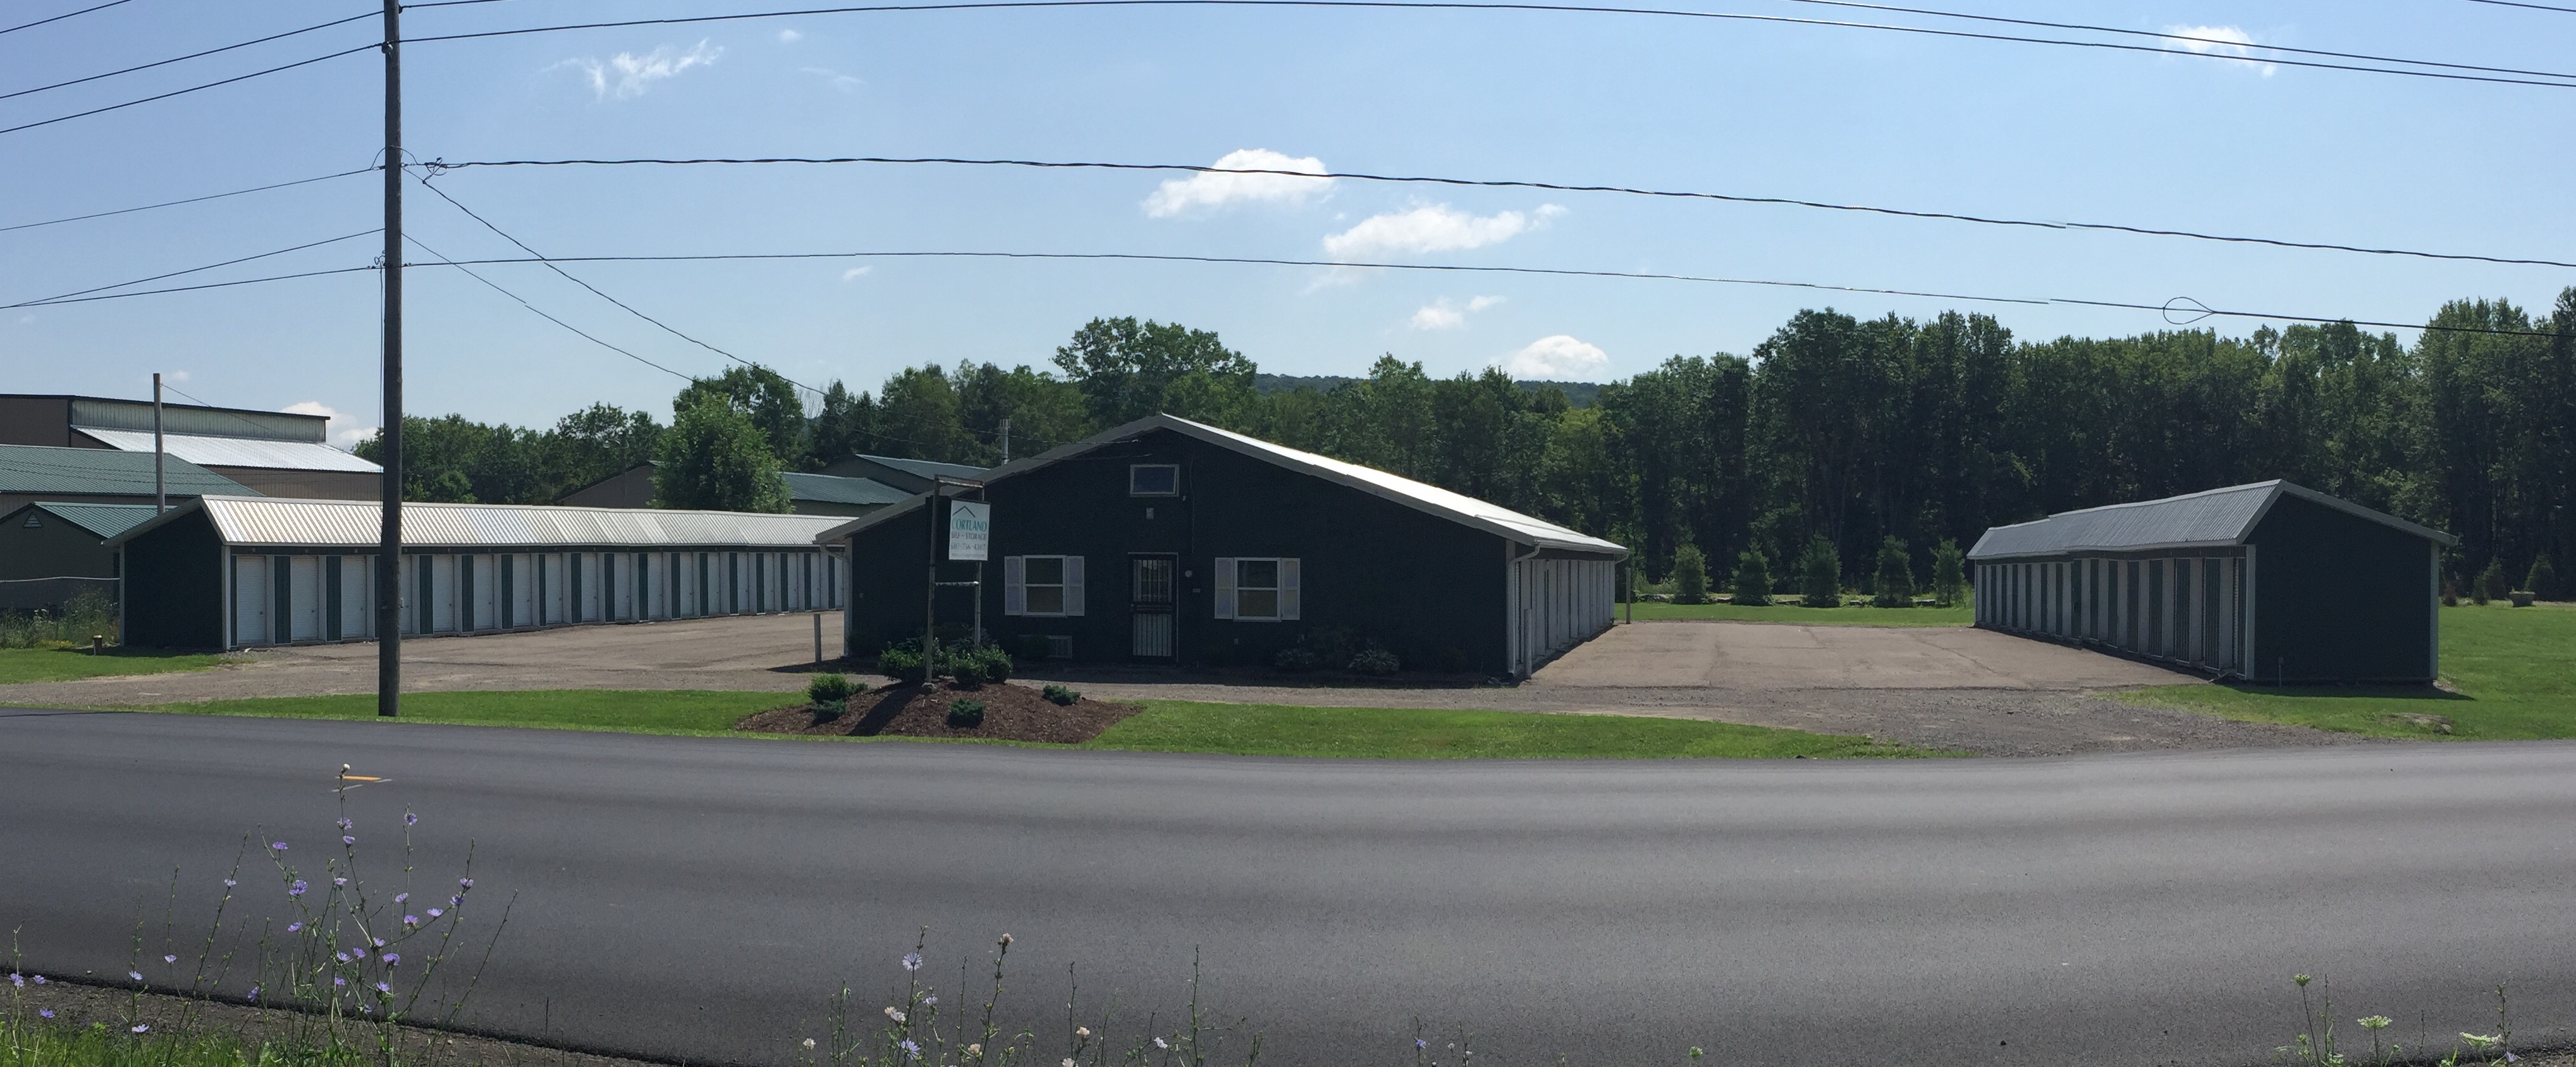 Self Storage in Cortland, NY